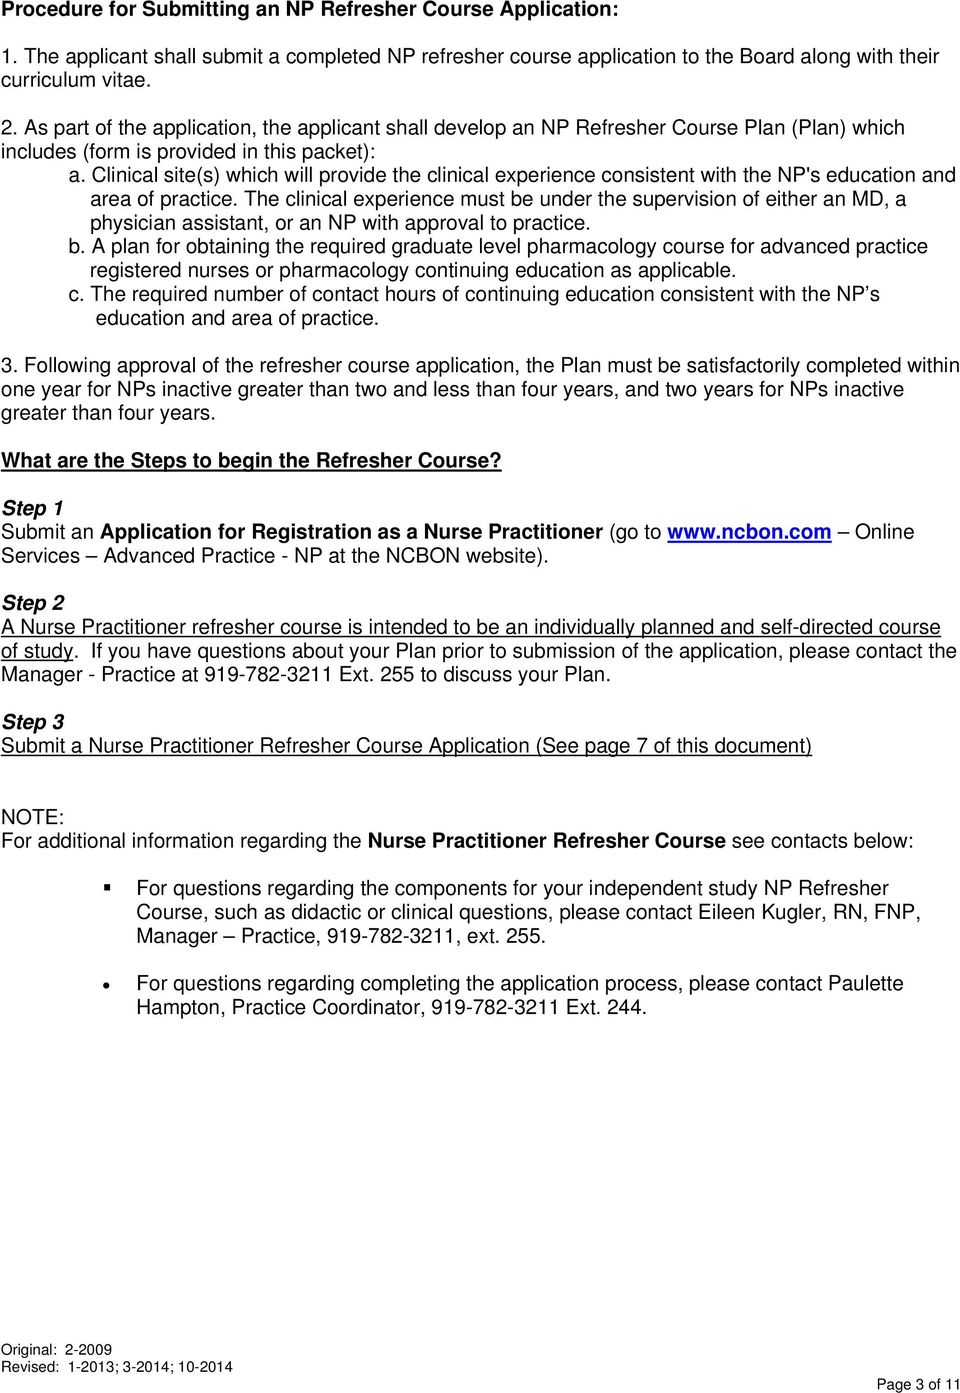 Nurse practitioner refresher course application packet pdf clinical sites which will provide the clinical experience consistent with the nps education 1betcityfo Images